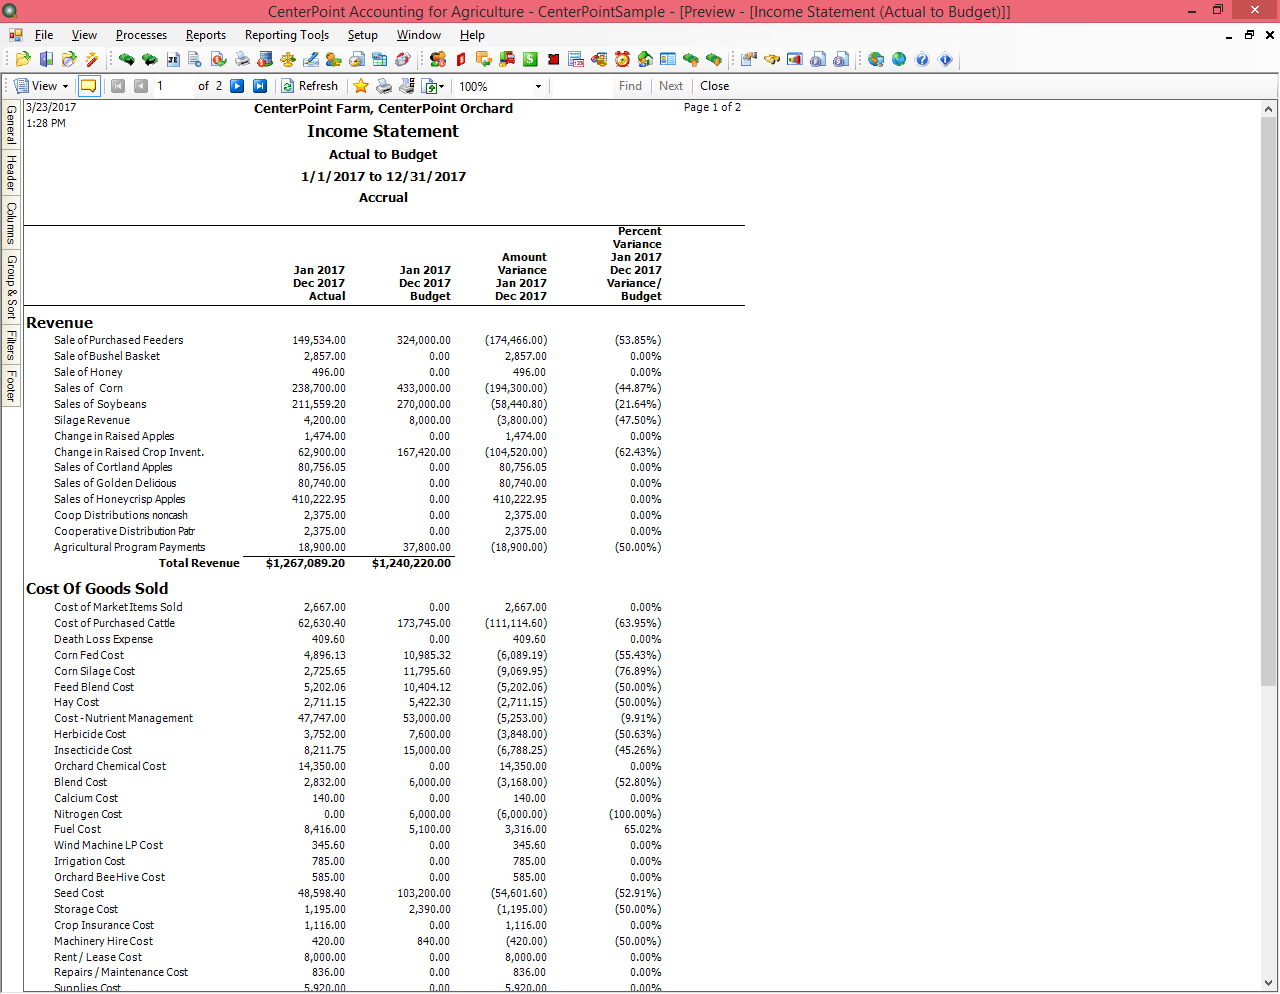 Actual to Budget Income Statement